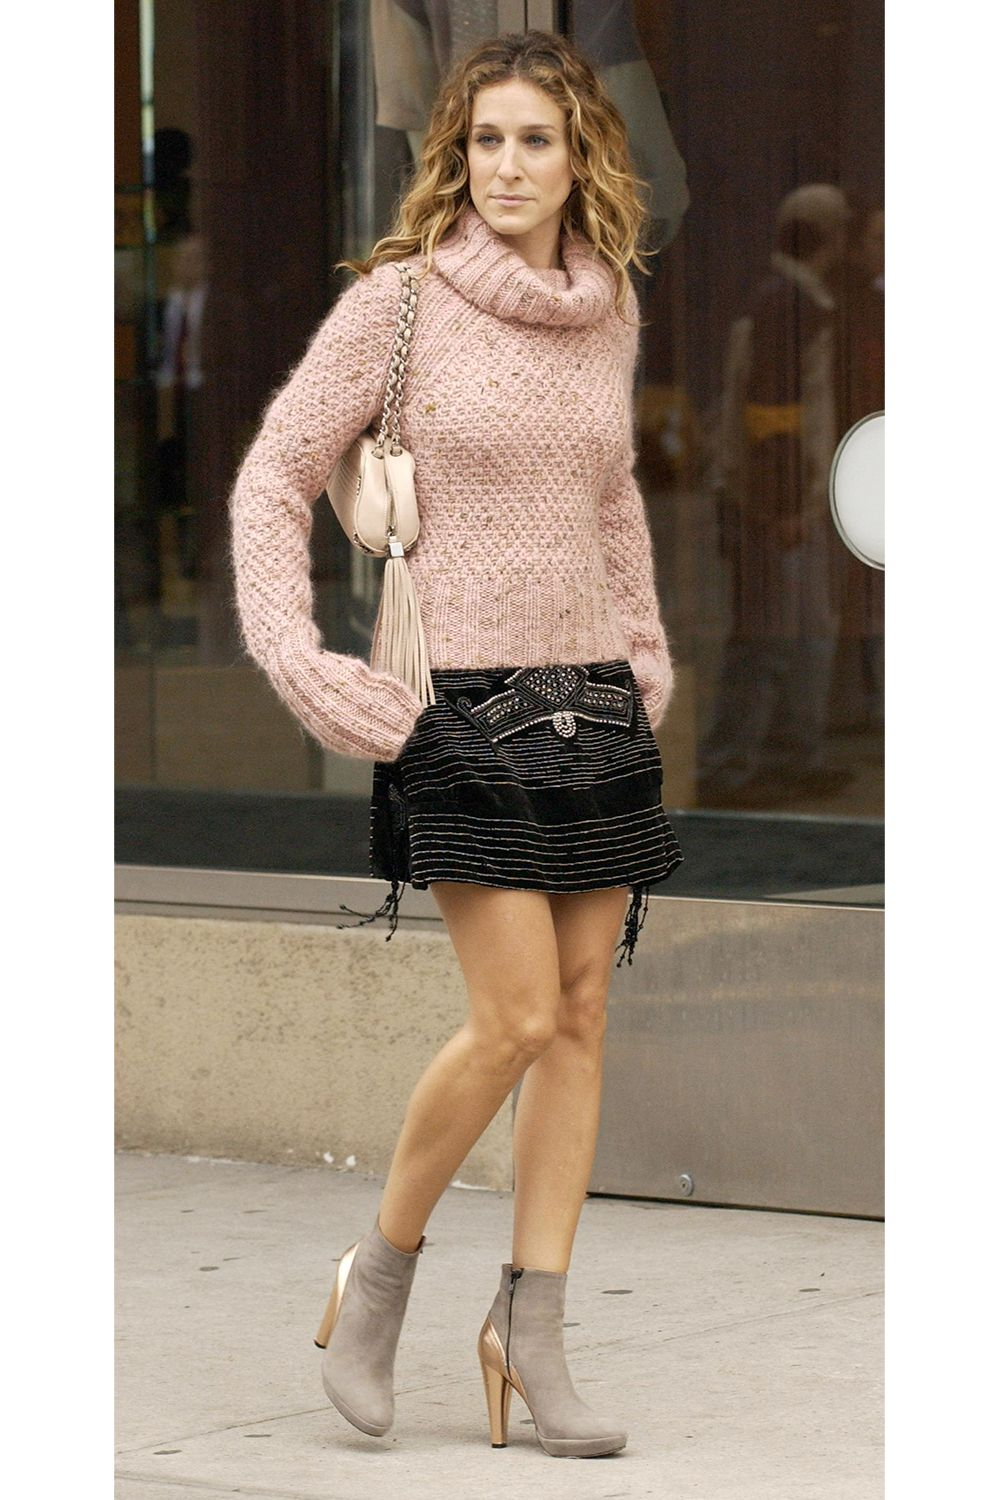 Carrie Bradshaw wearing a pink sweater, black skirt and two-tone ankle-length boots.